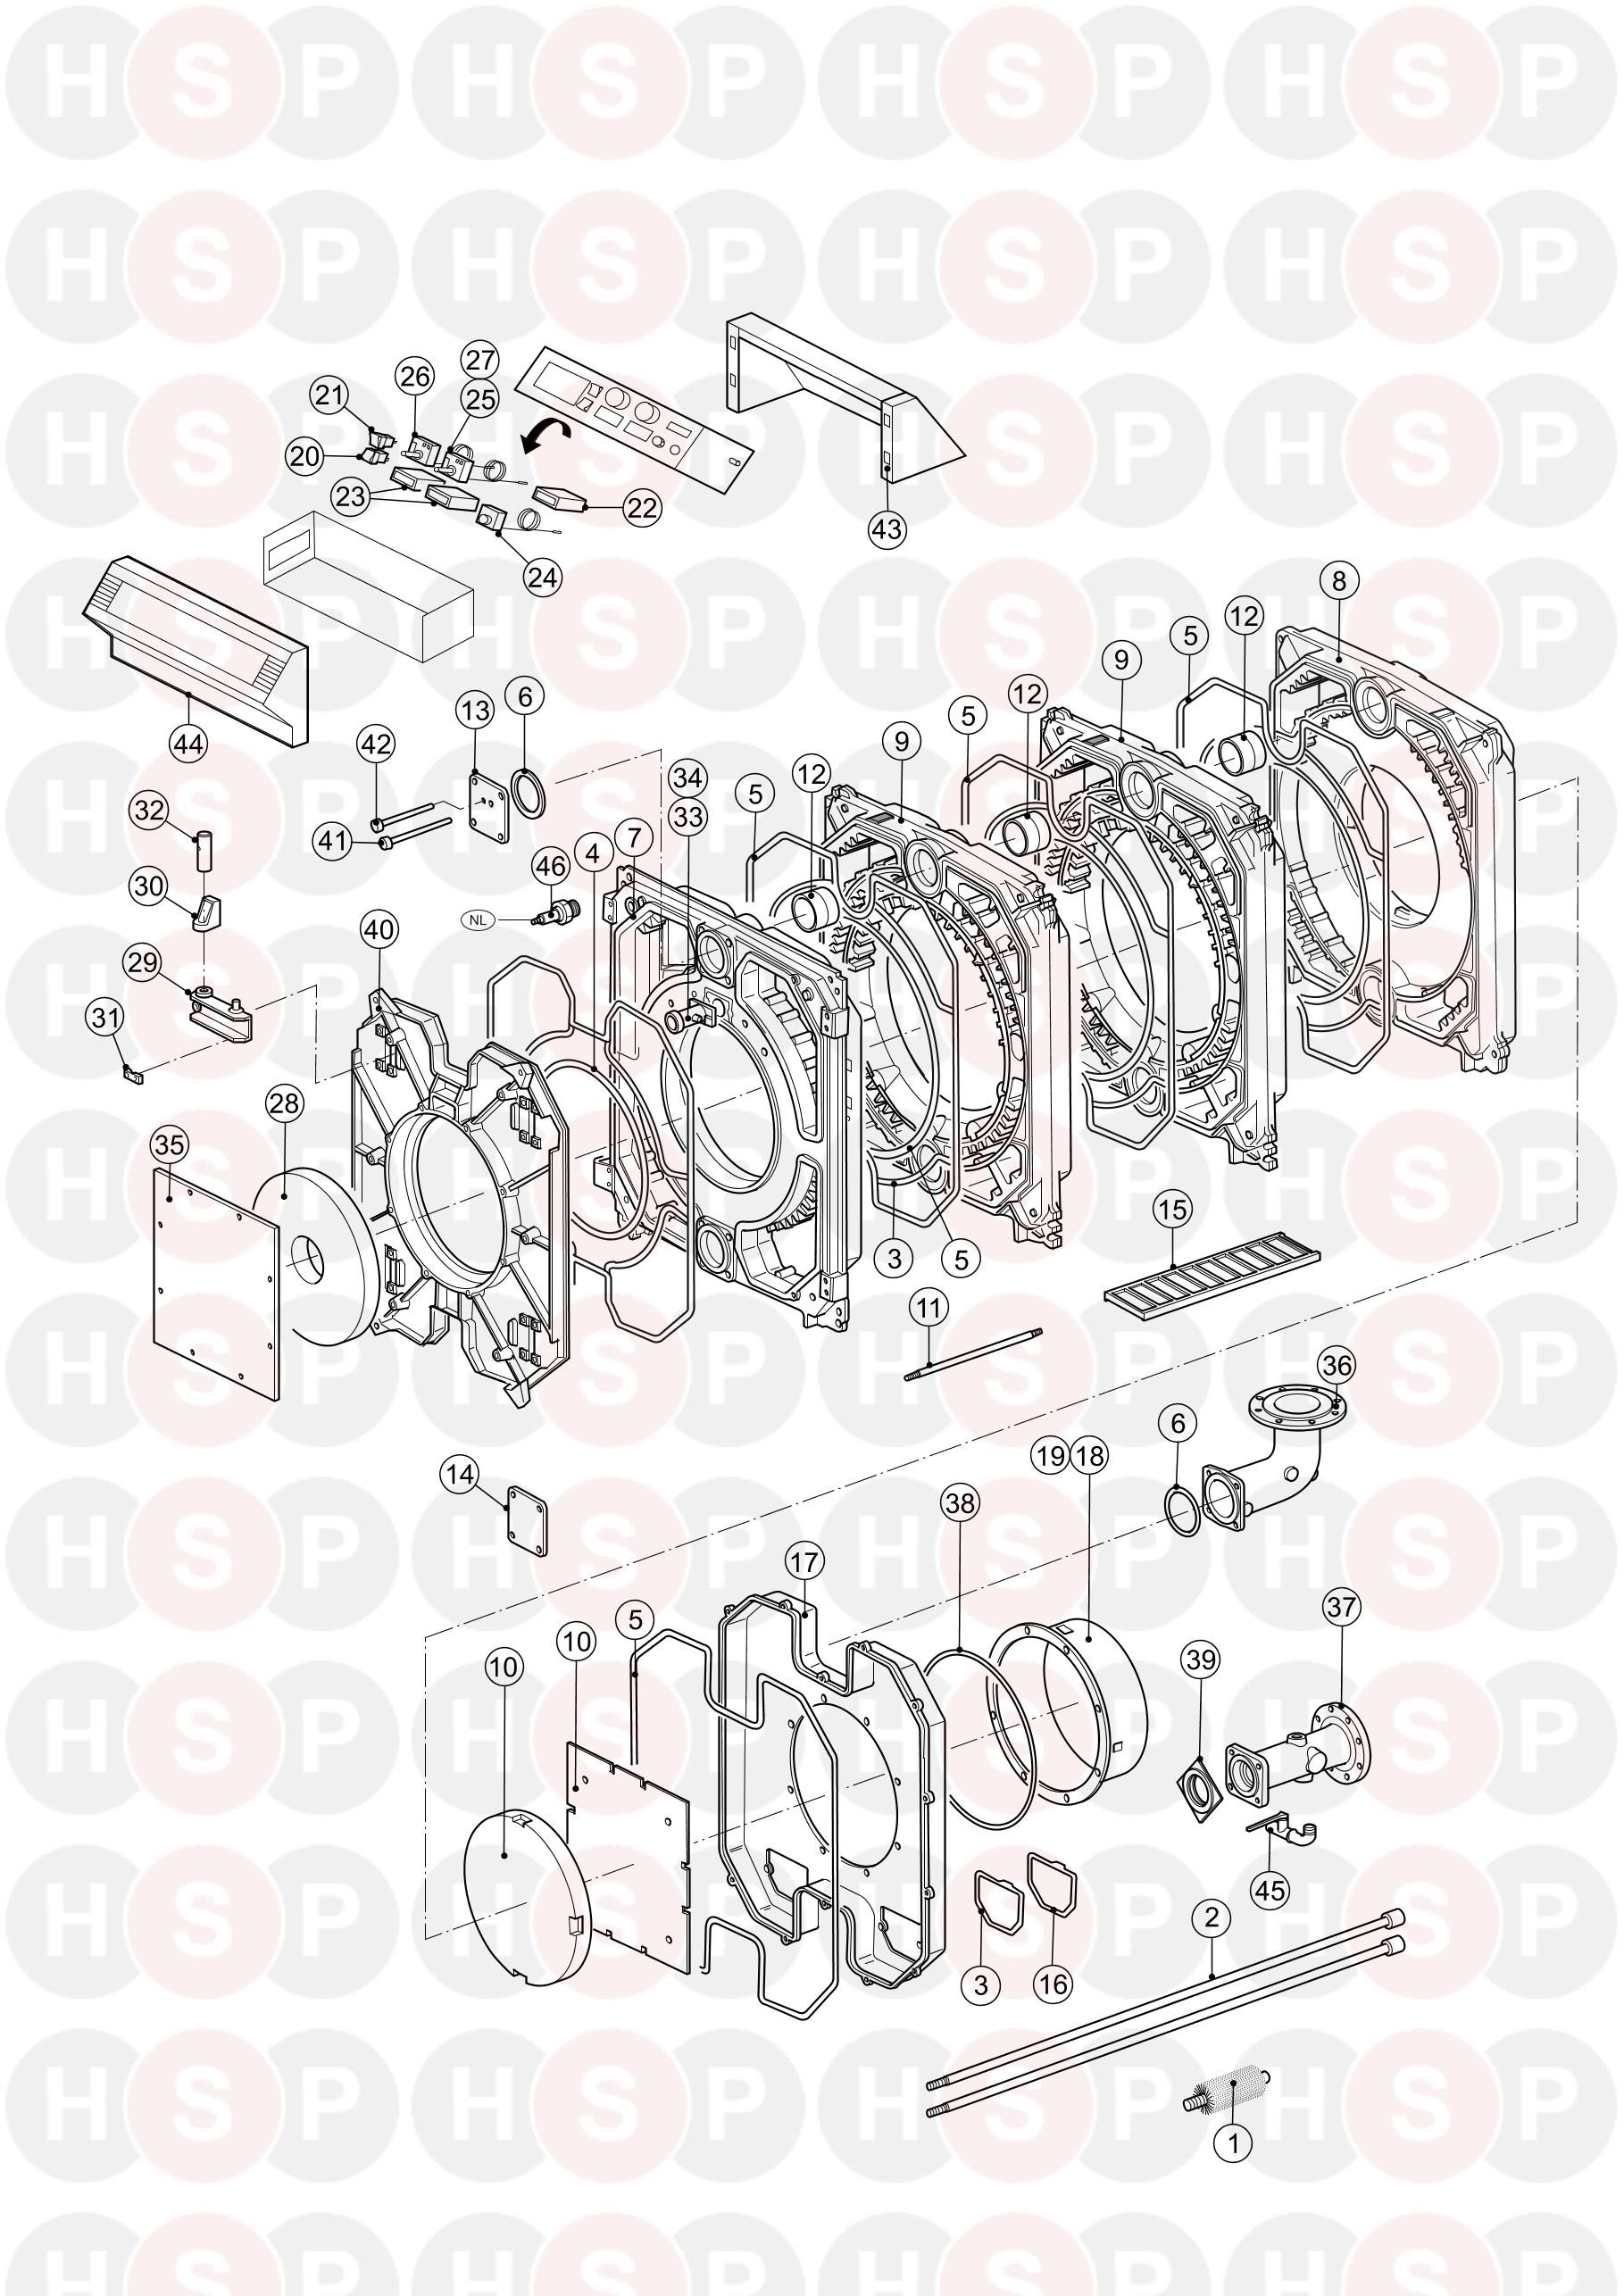 Boiler Exploded View diagram for Remeha-Commercial P500